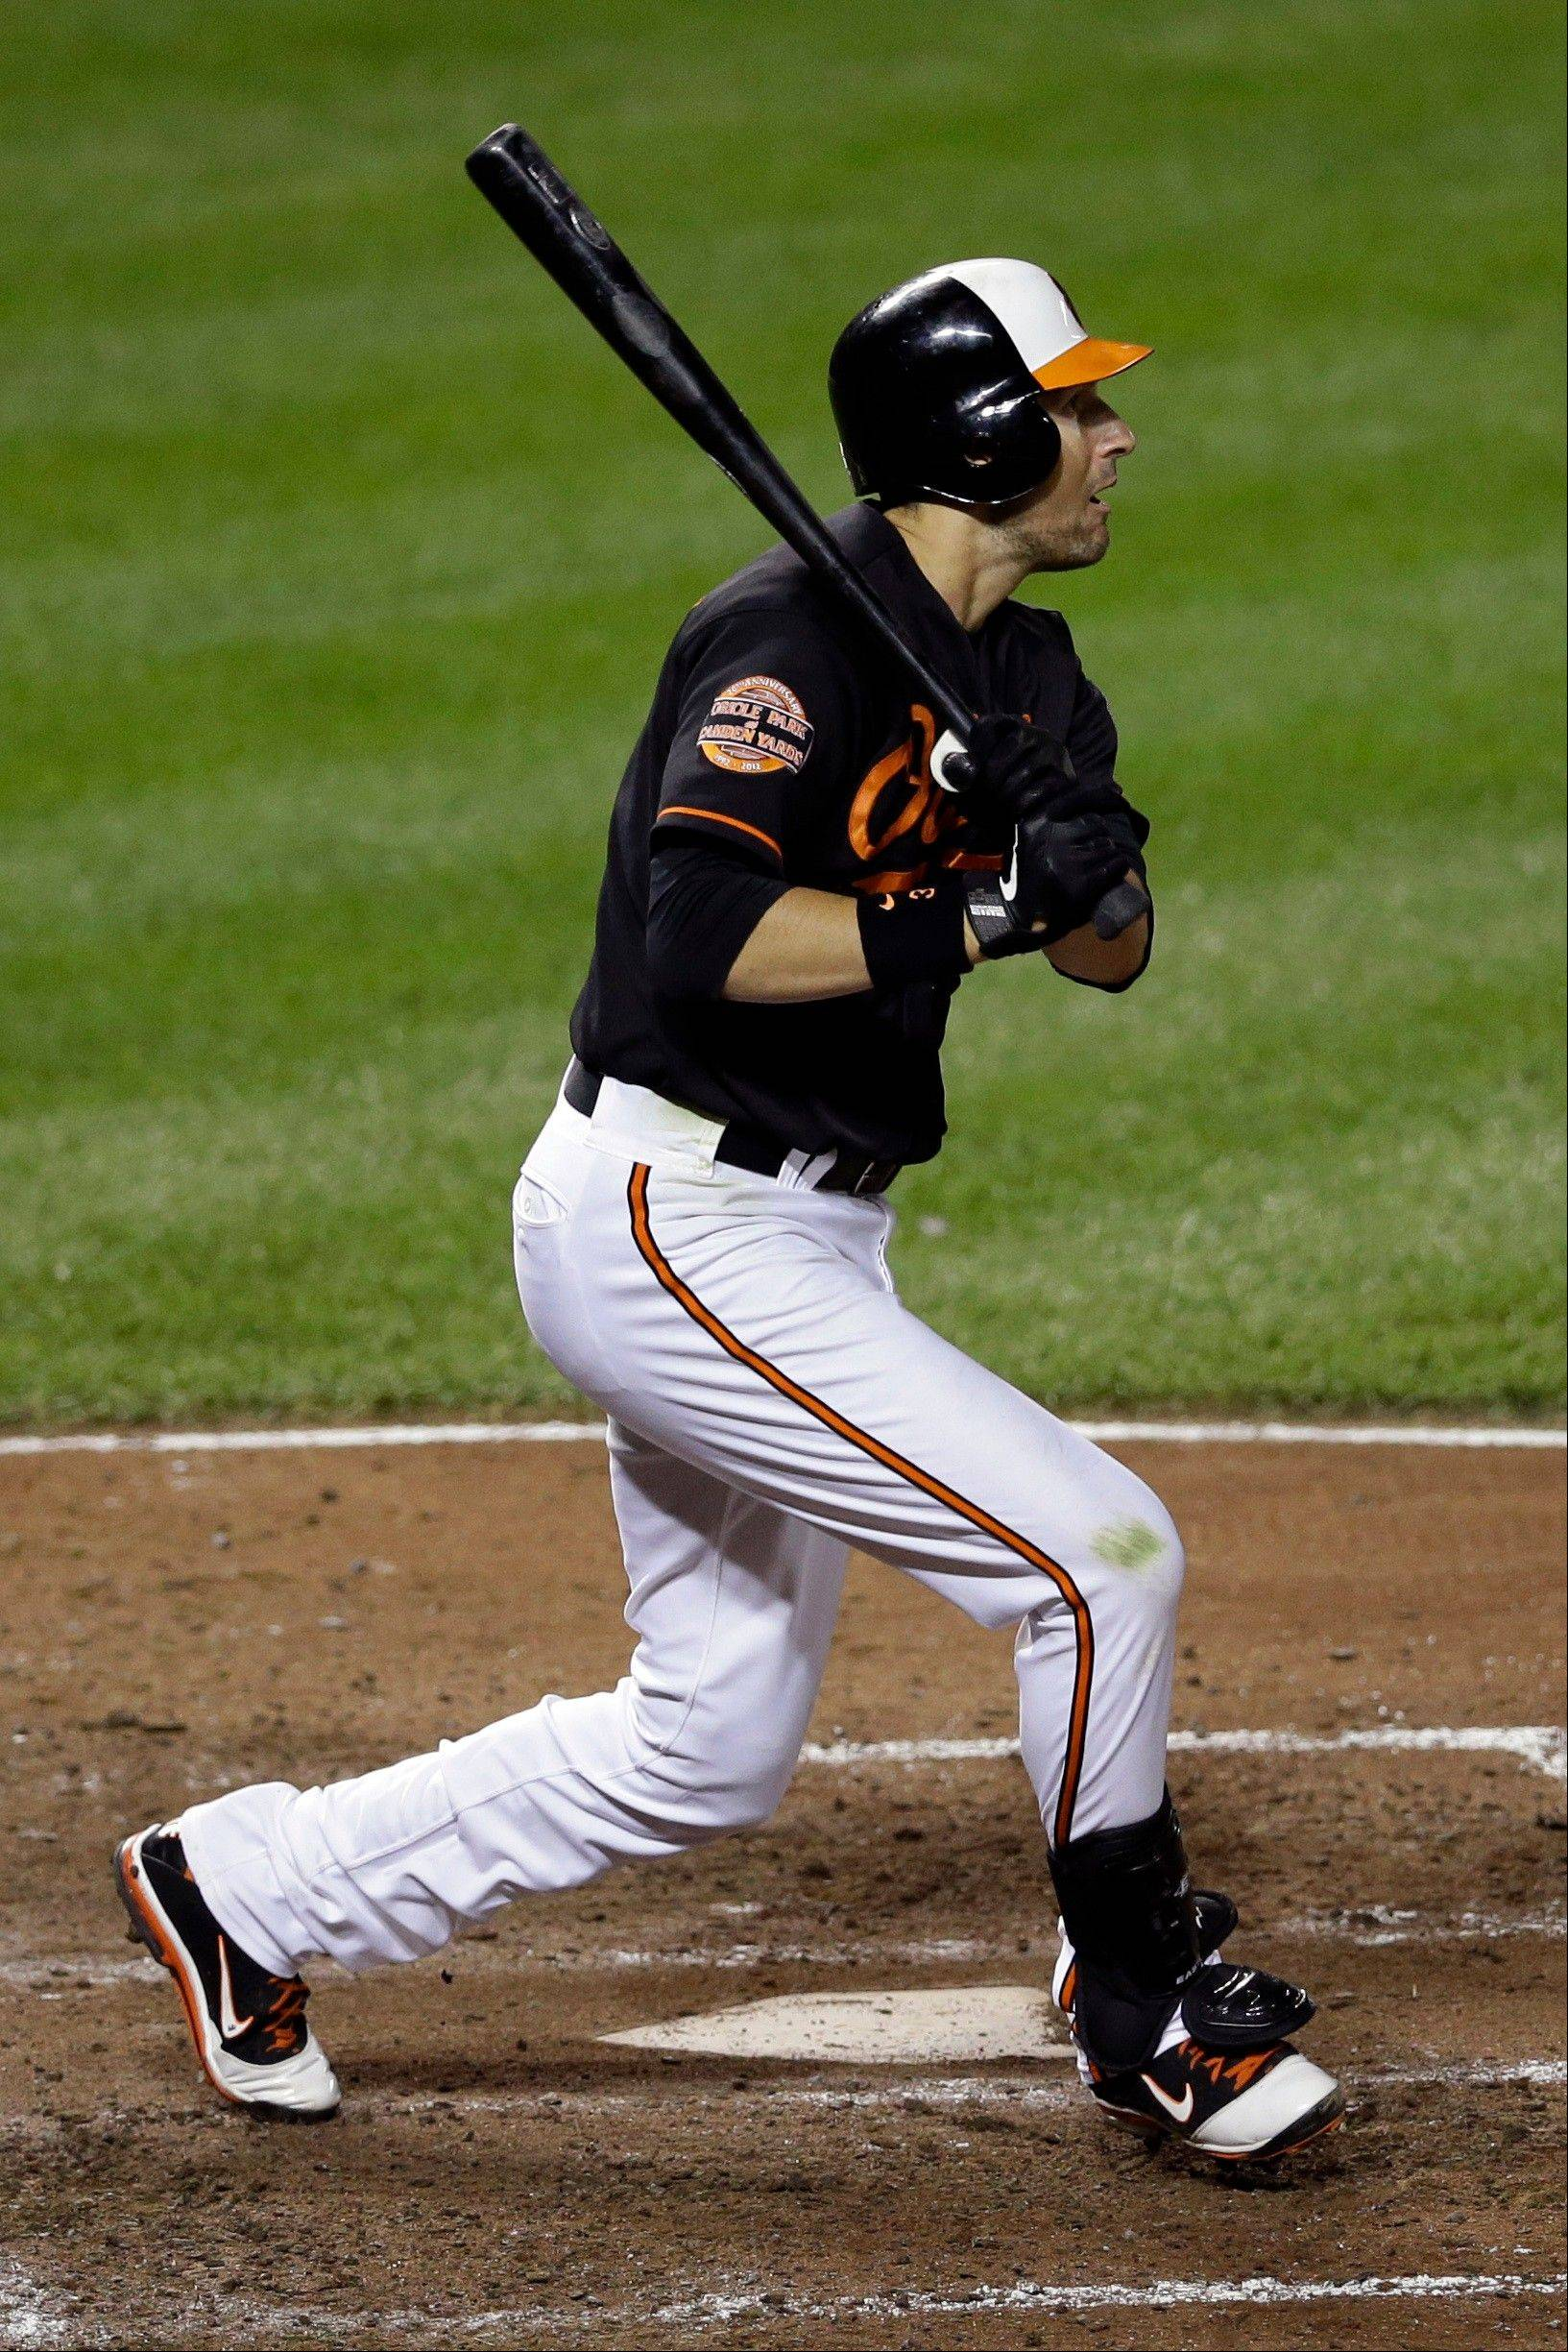 Baltimore's Ryan Flaherty doubles in the fifth inning Friday at home against the Boston Red Sox.